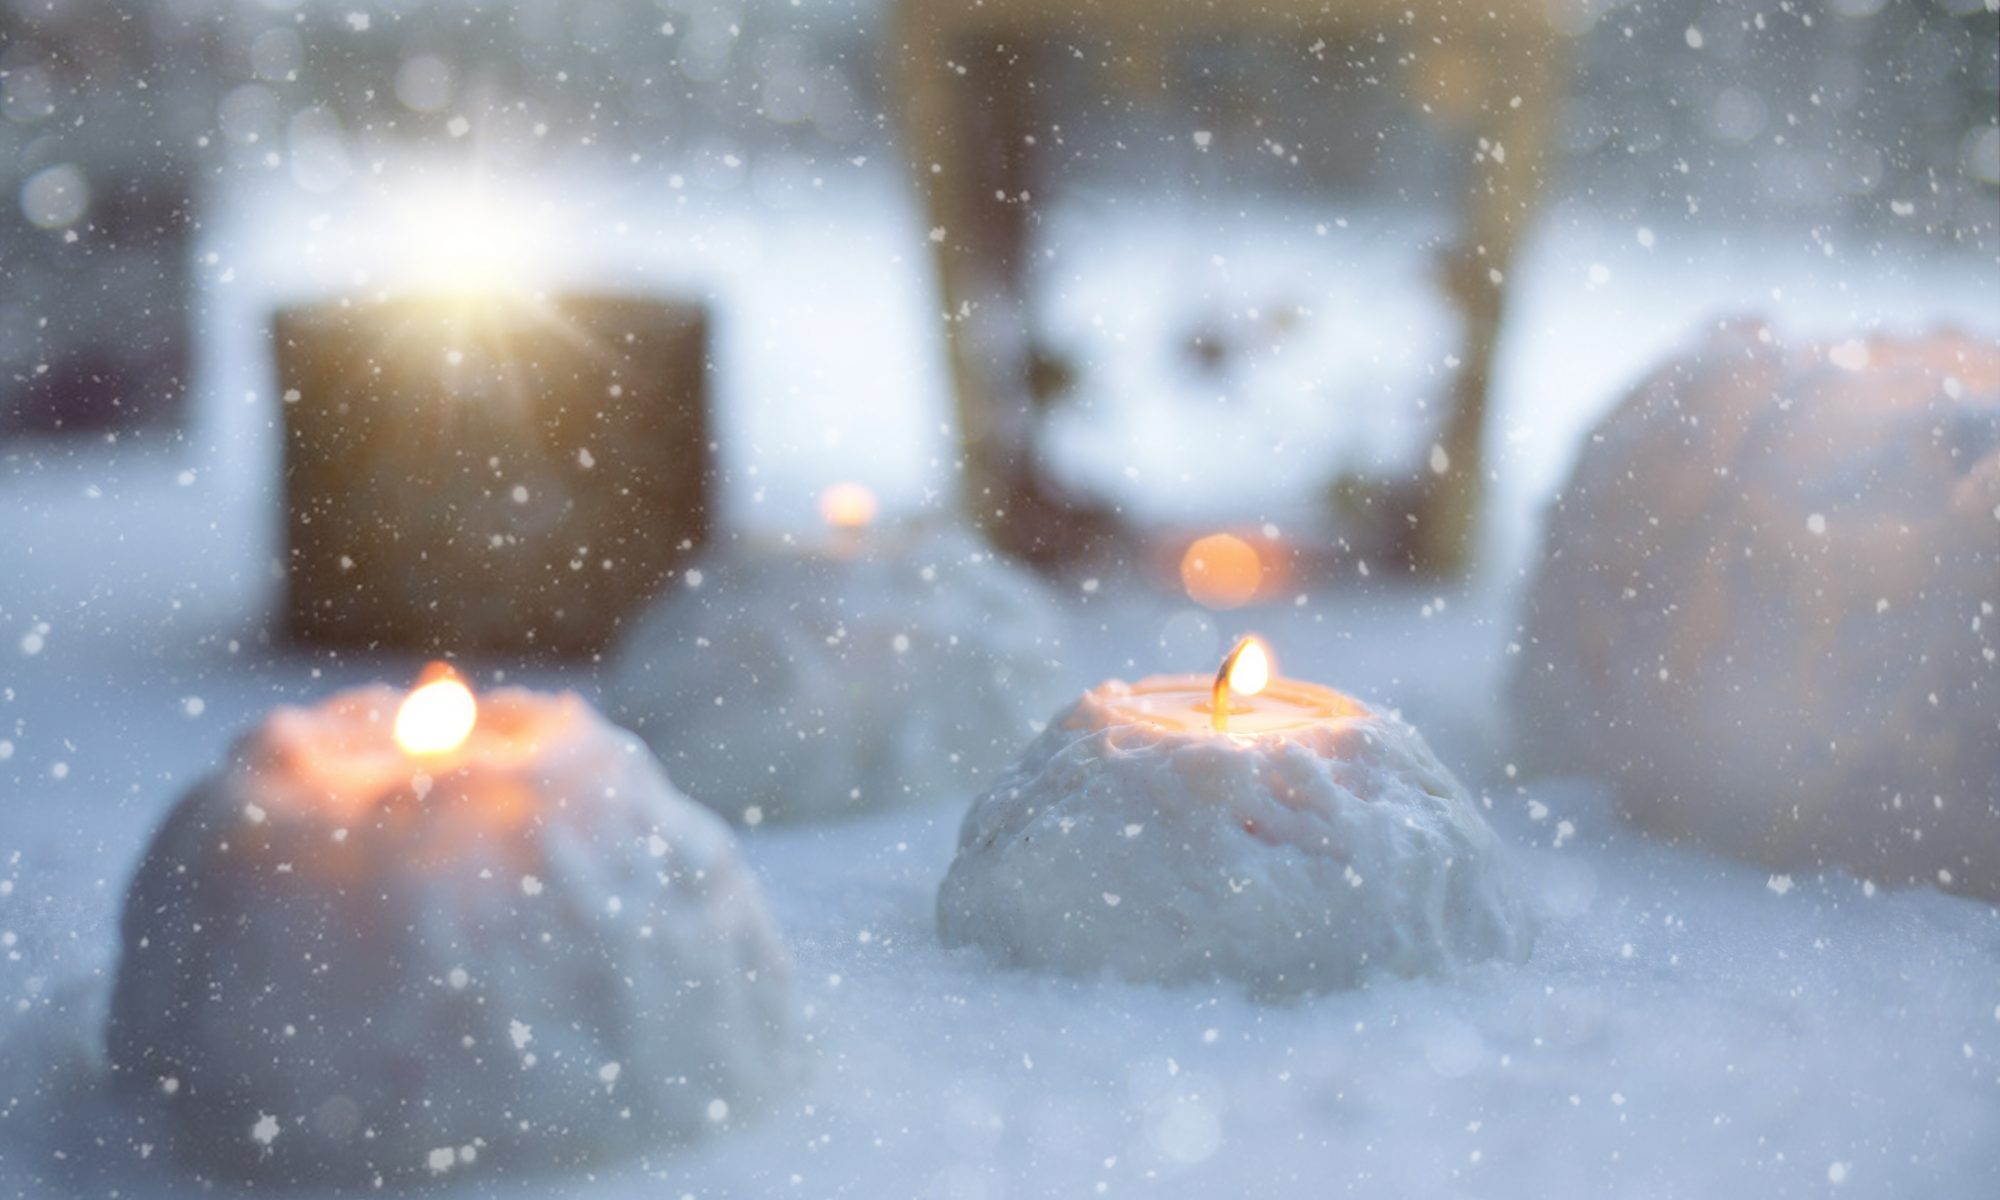 blurry photo of round candles in snow